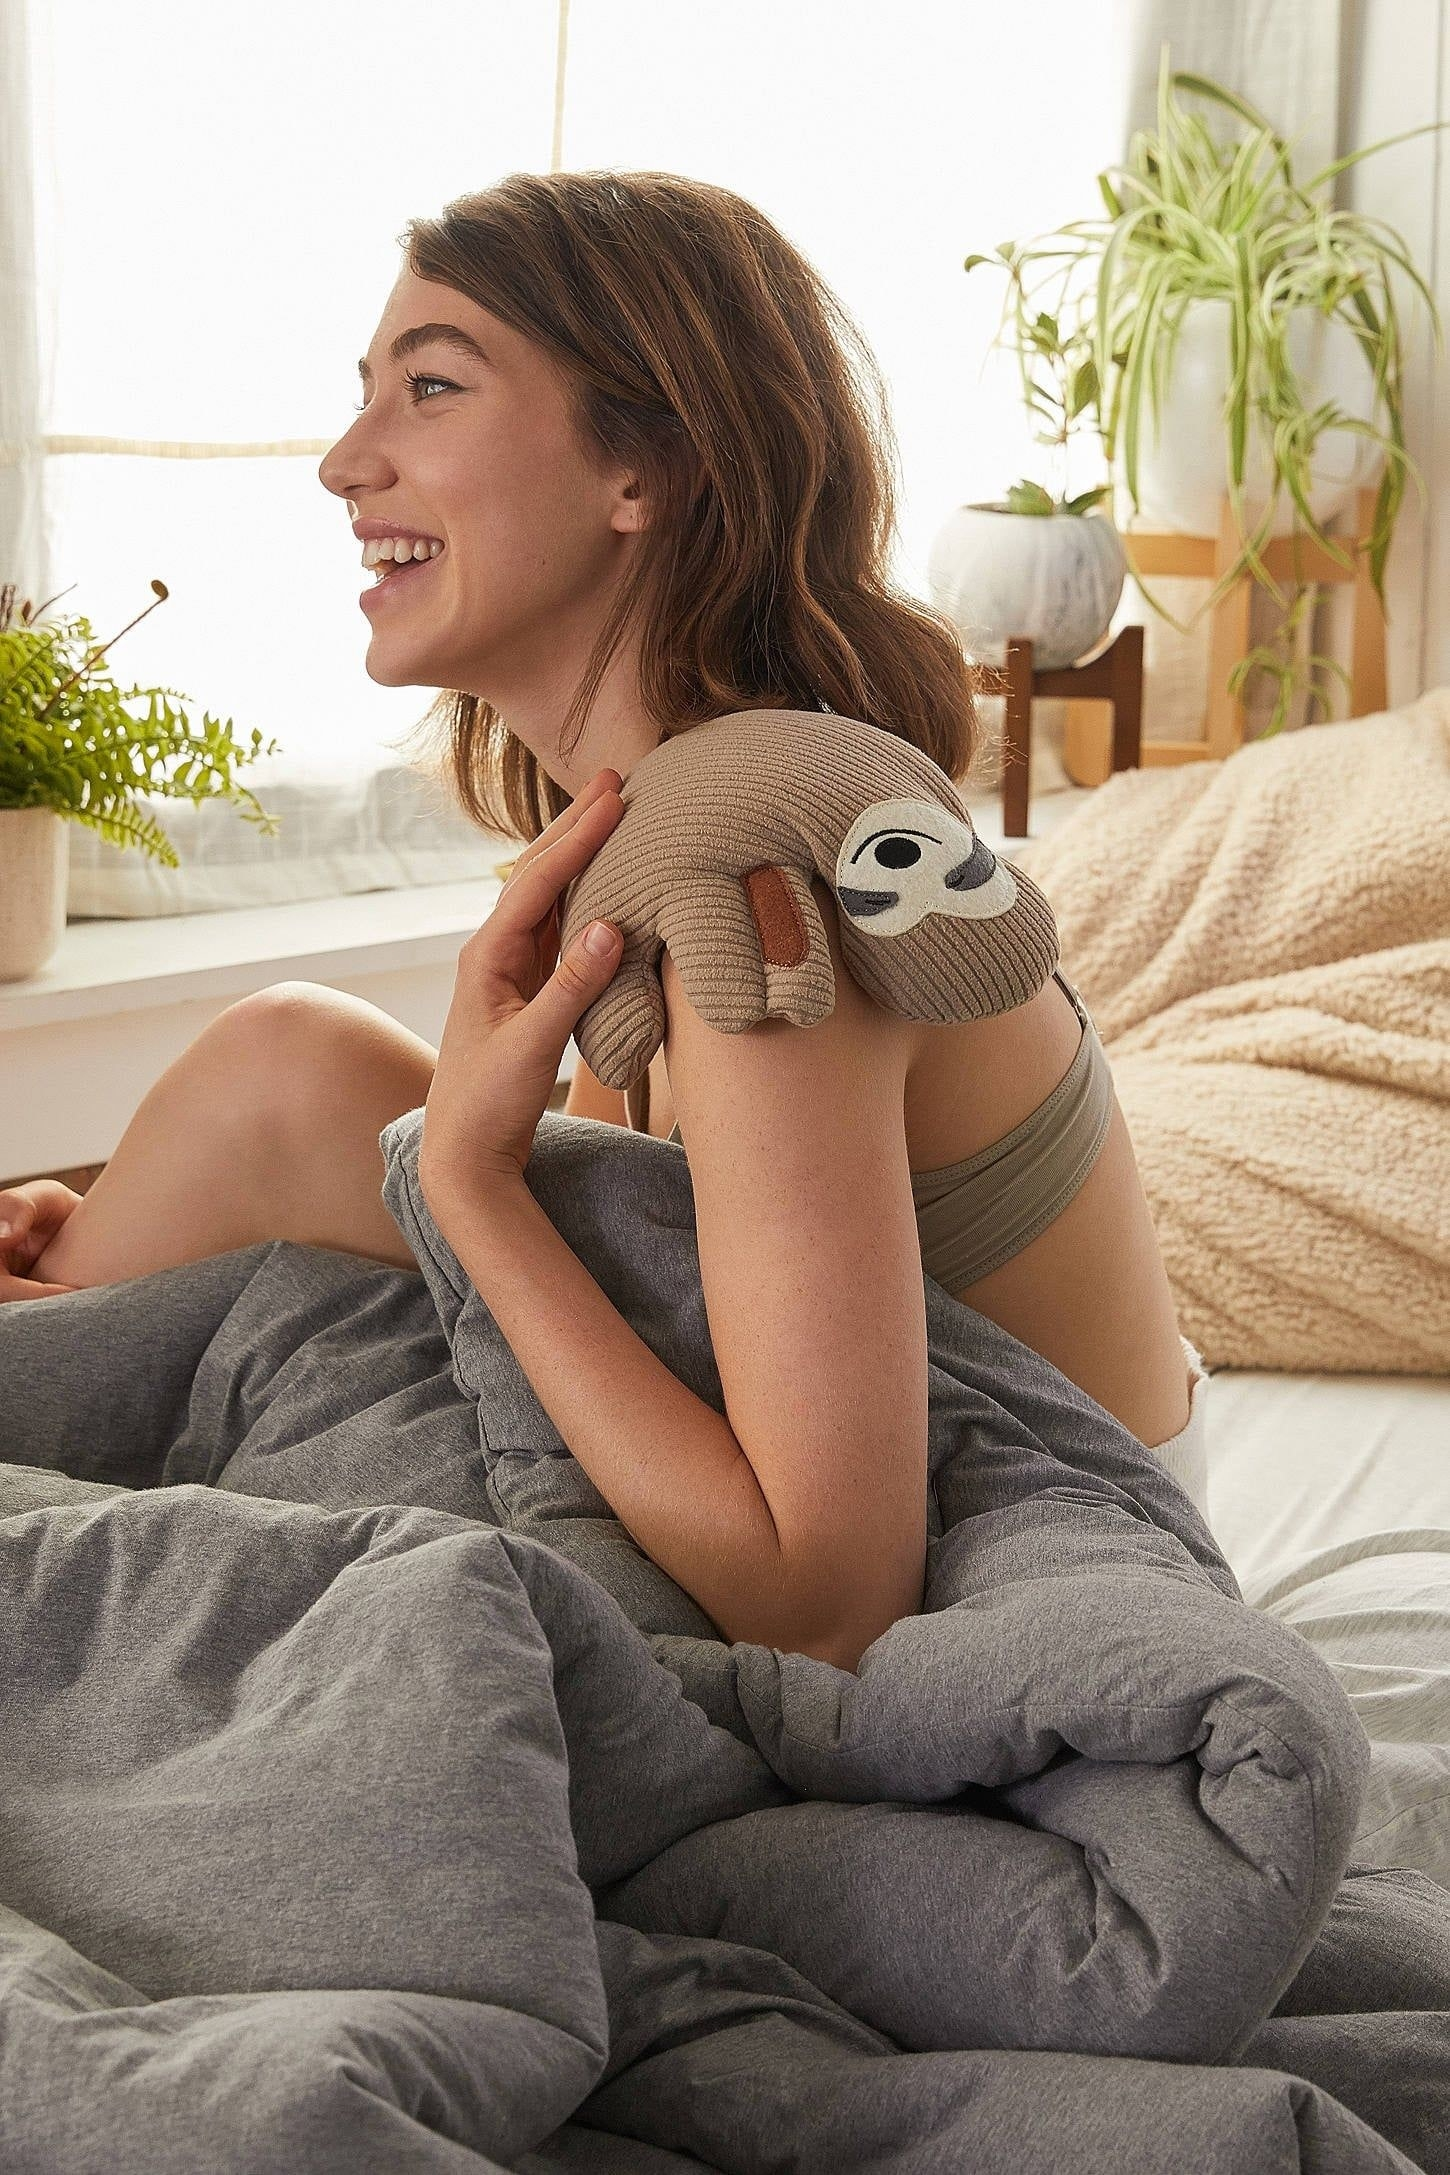 a model with the pad that looks like a sloth on their shoulder